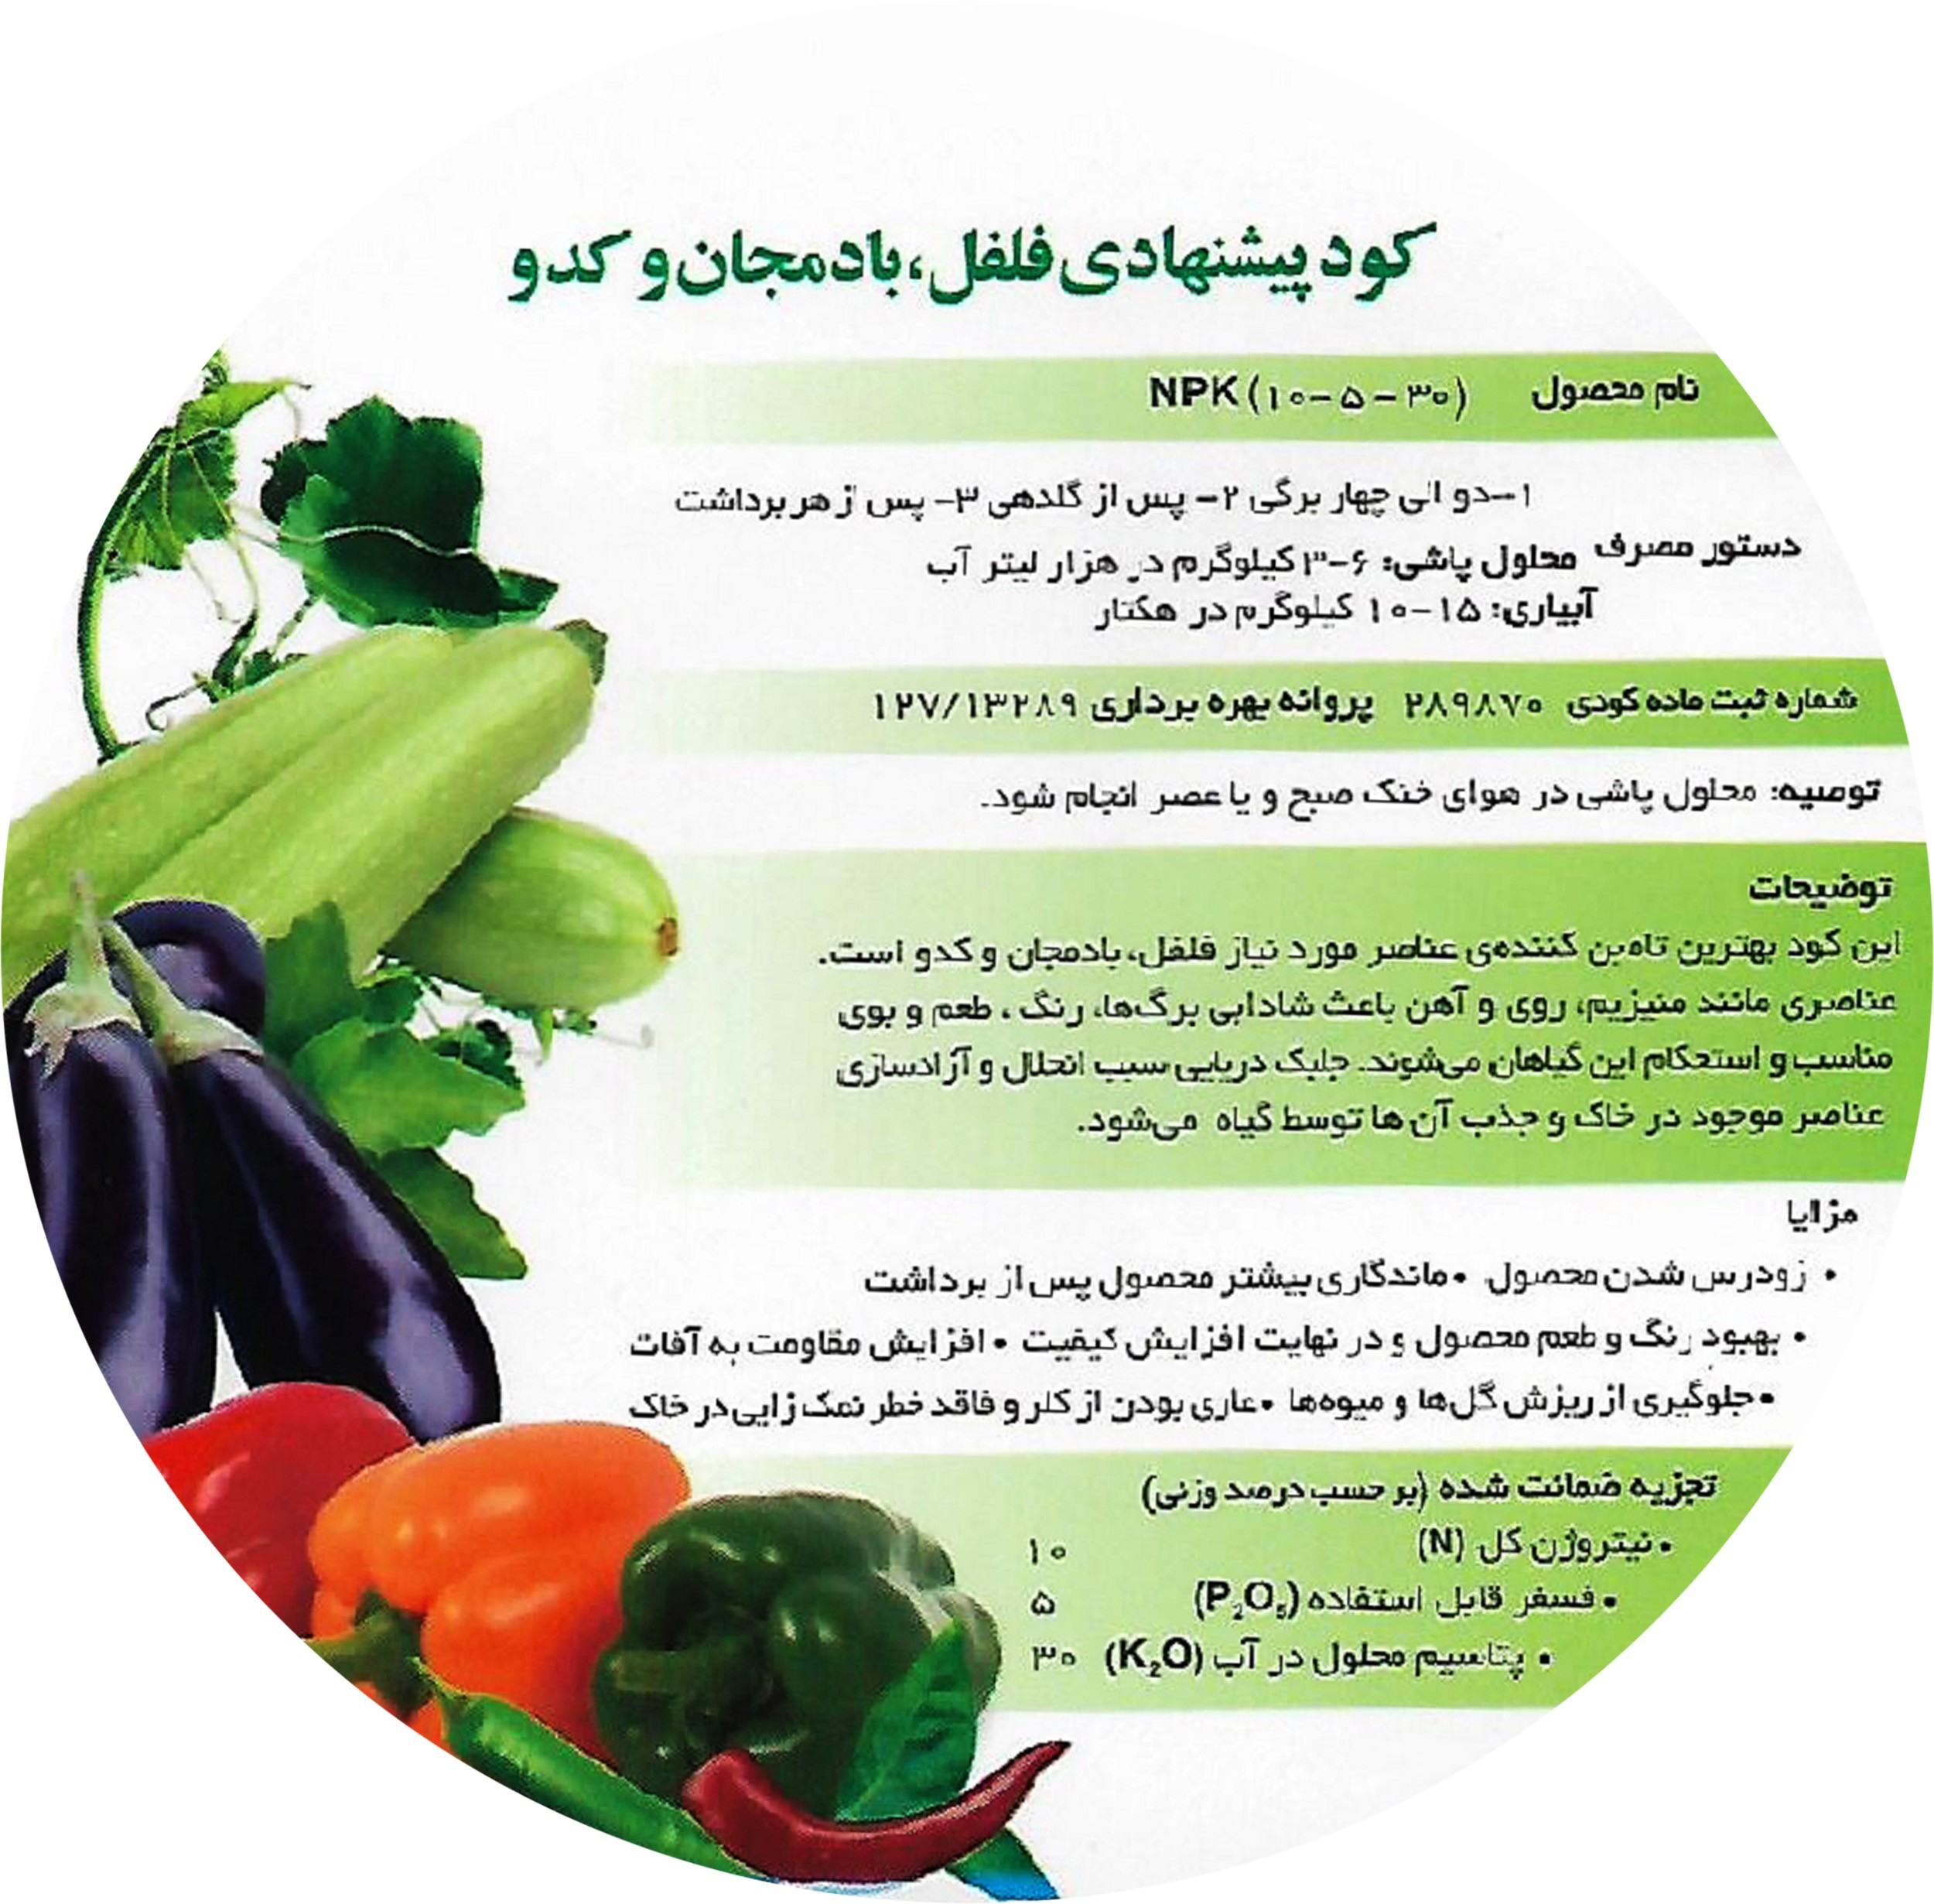 image number  1 products  Special fertilizer for peppers, squash, eggplant, tacos, AYSA, weight 1 kg